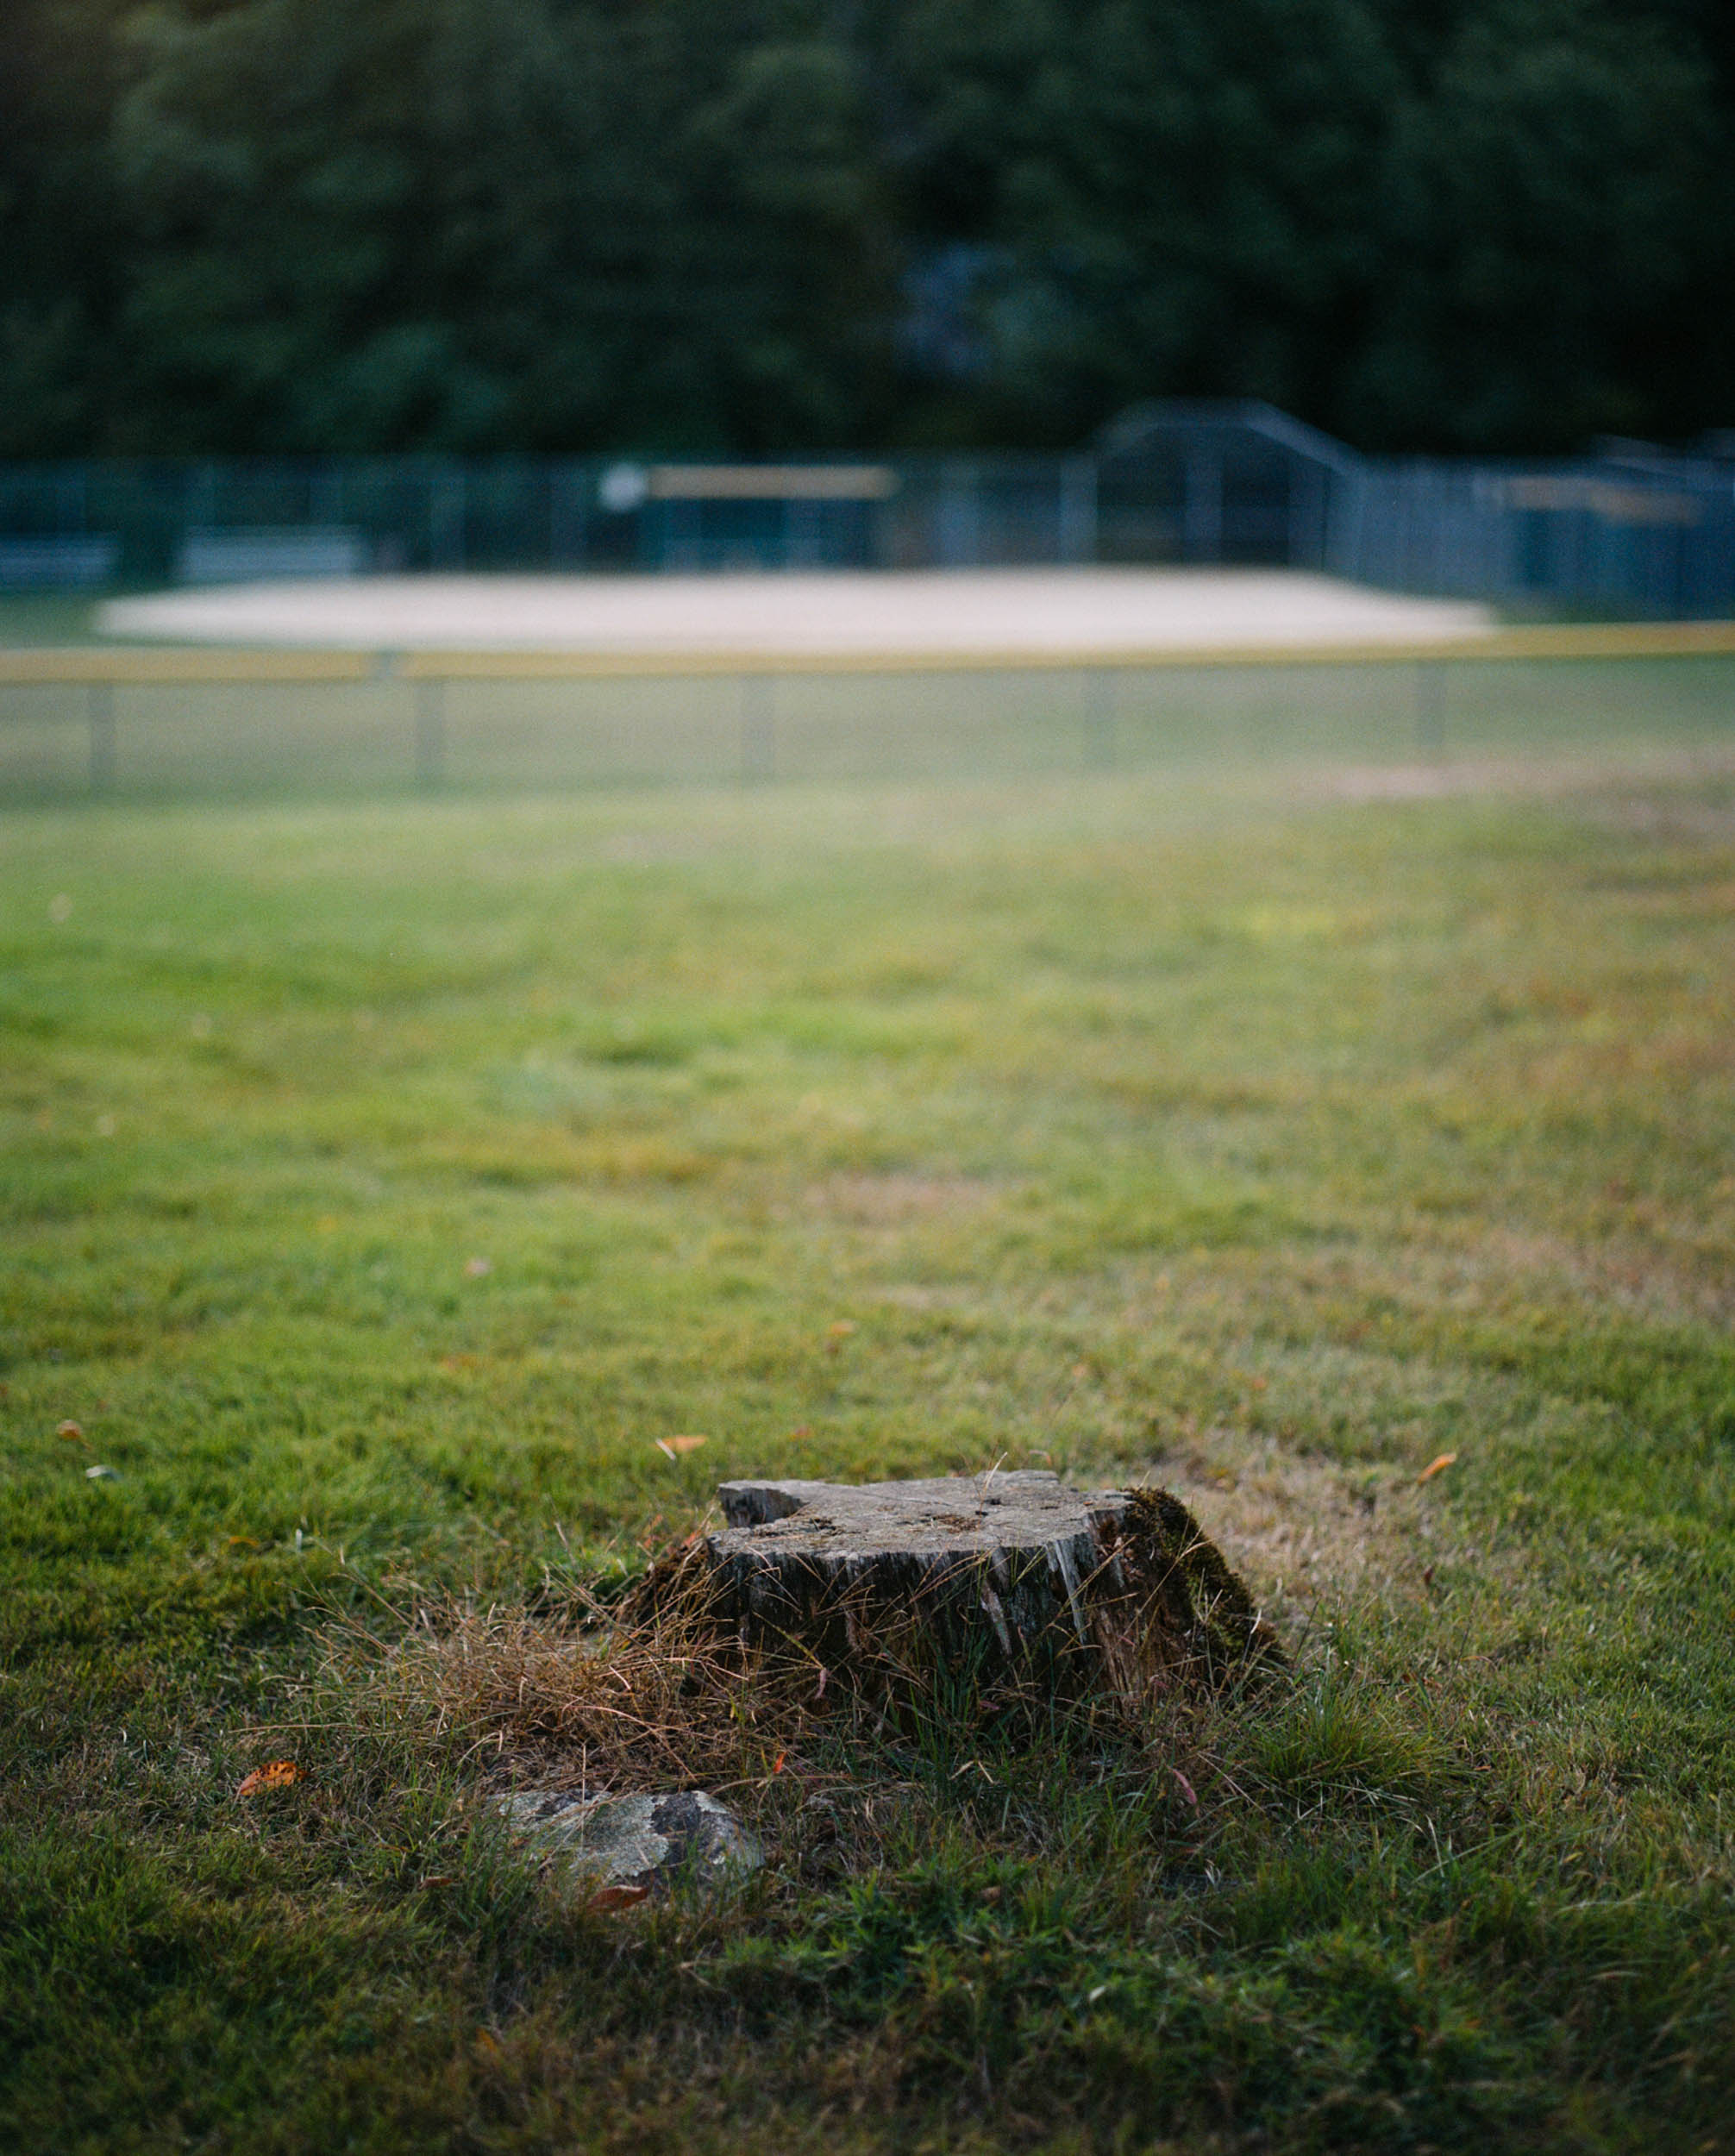 Not only did I live just steps away from the town's library, but I also was fortunate to have the town's baseball field as my backyard. For many summer nights growing up my brother and I would take turns sitting on this tree stump with perfect seats to watch the local youth baseball and softball teams play until the sun went down. If we were lucky we'd get to catch the occasional home run...